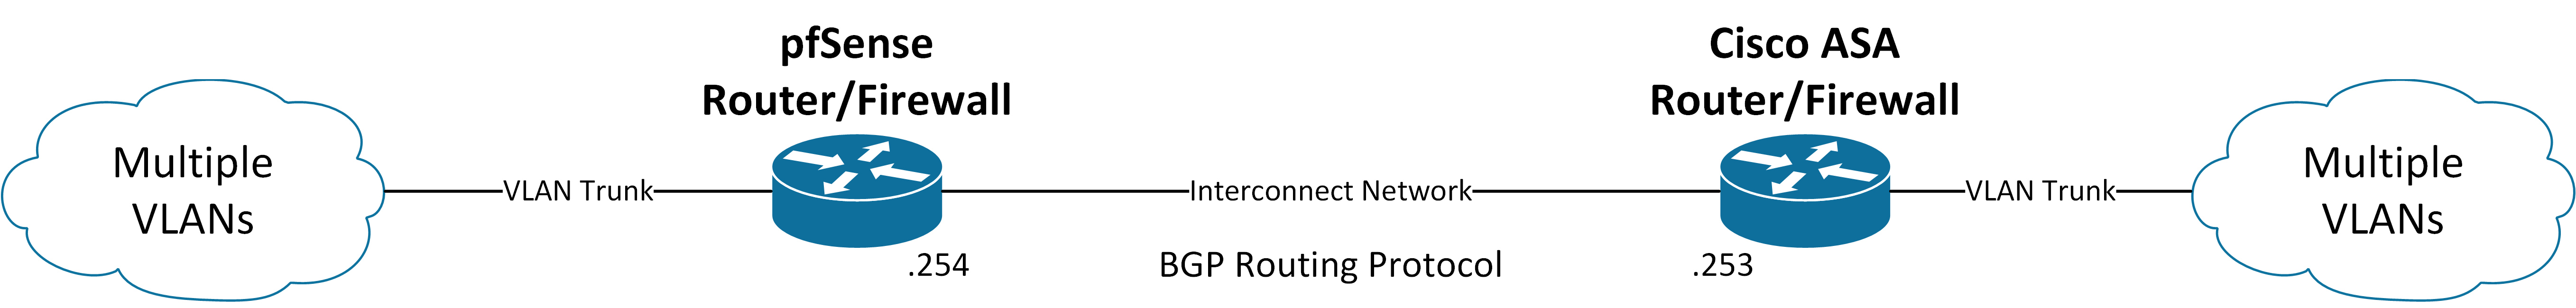 Basic Network Overview